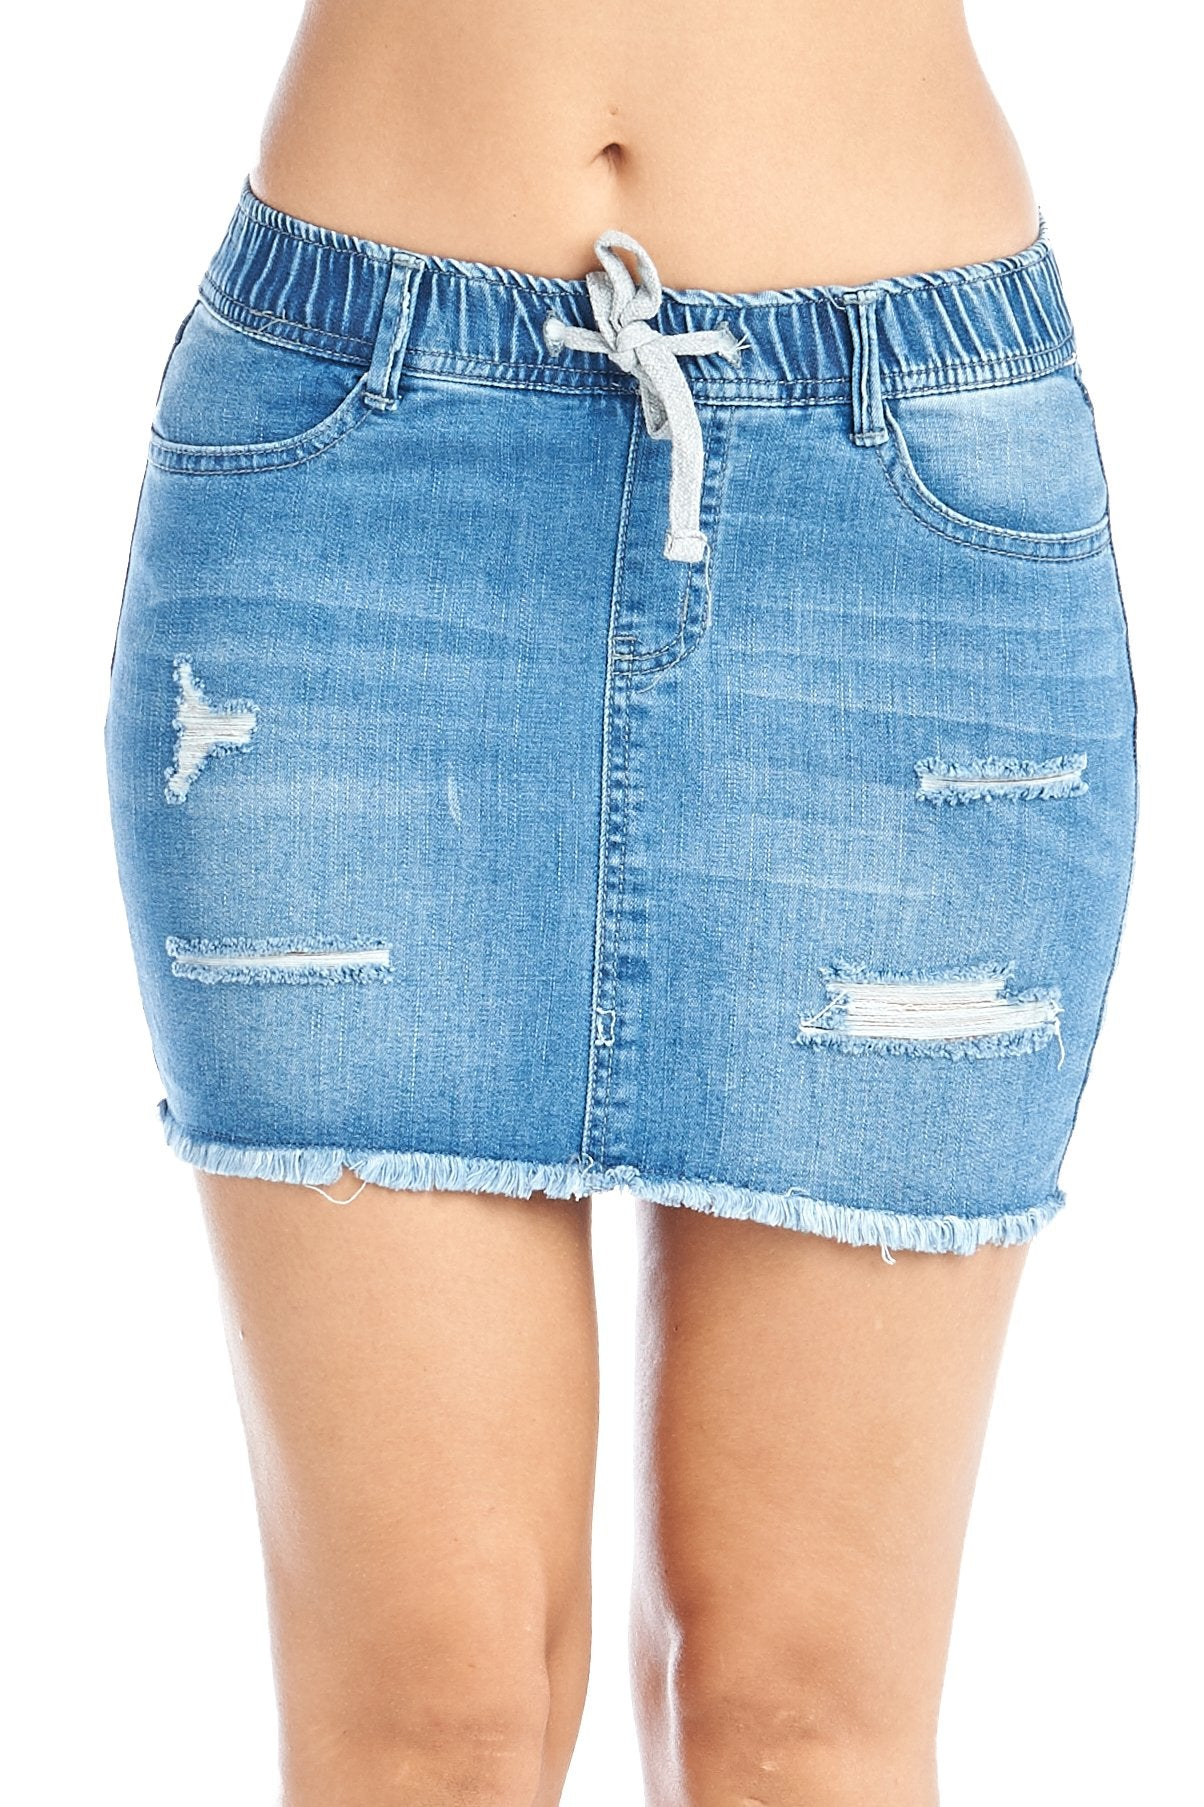 Women's Casual Cotton Elastic Drawstring Waist Distress Frayed Hem Denim Mini Skirt